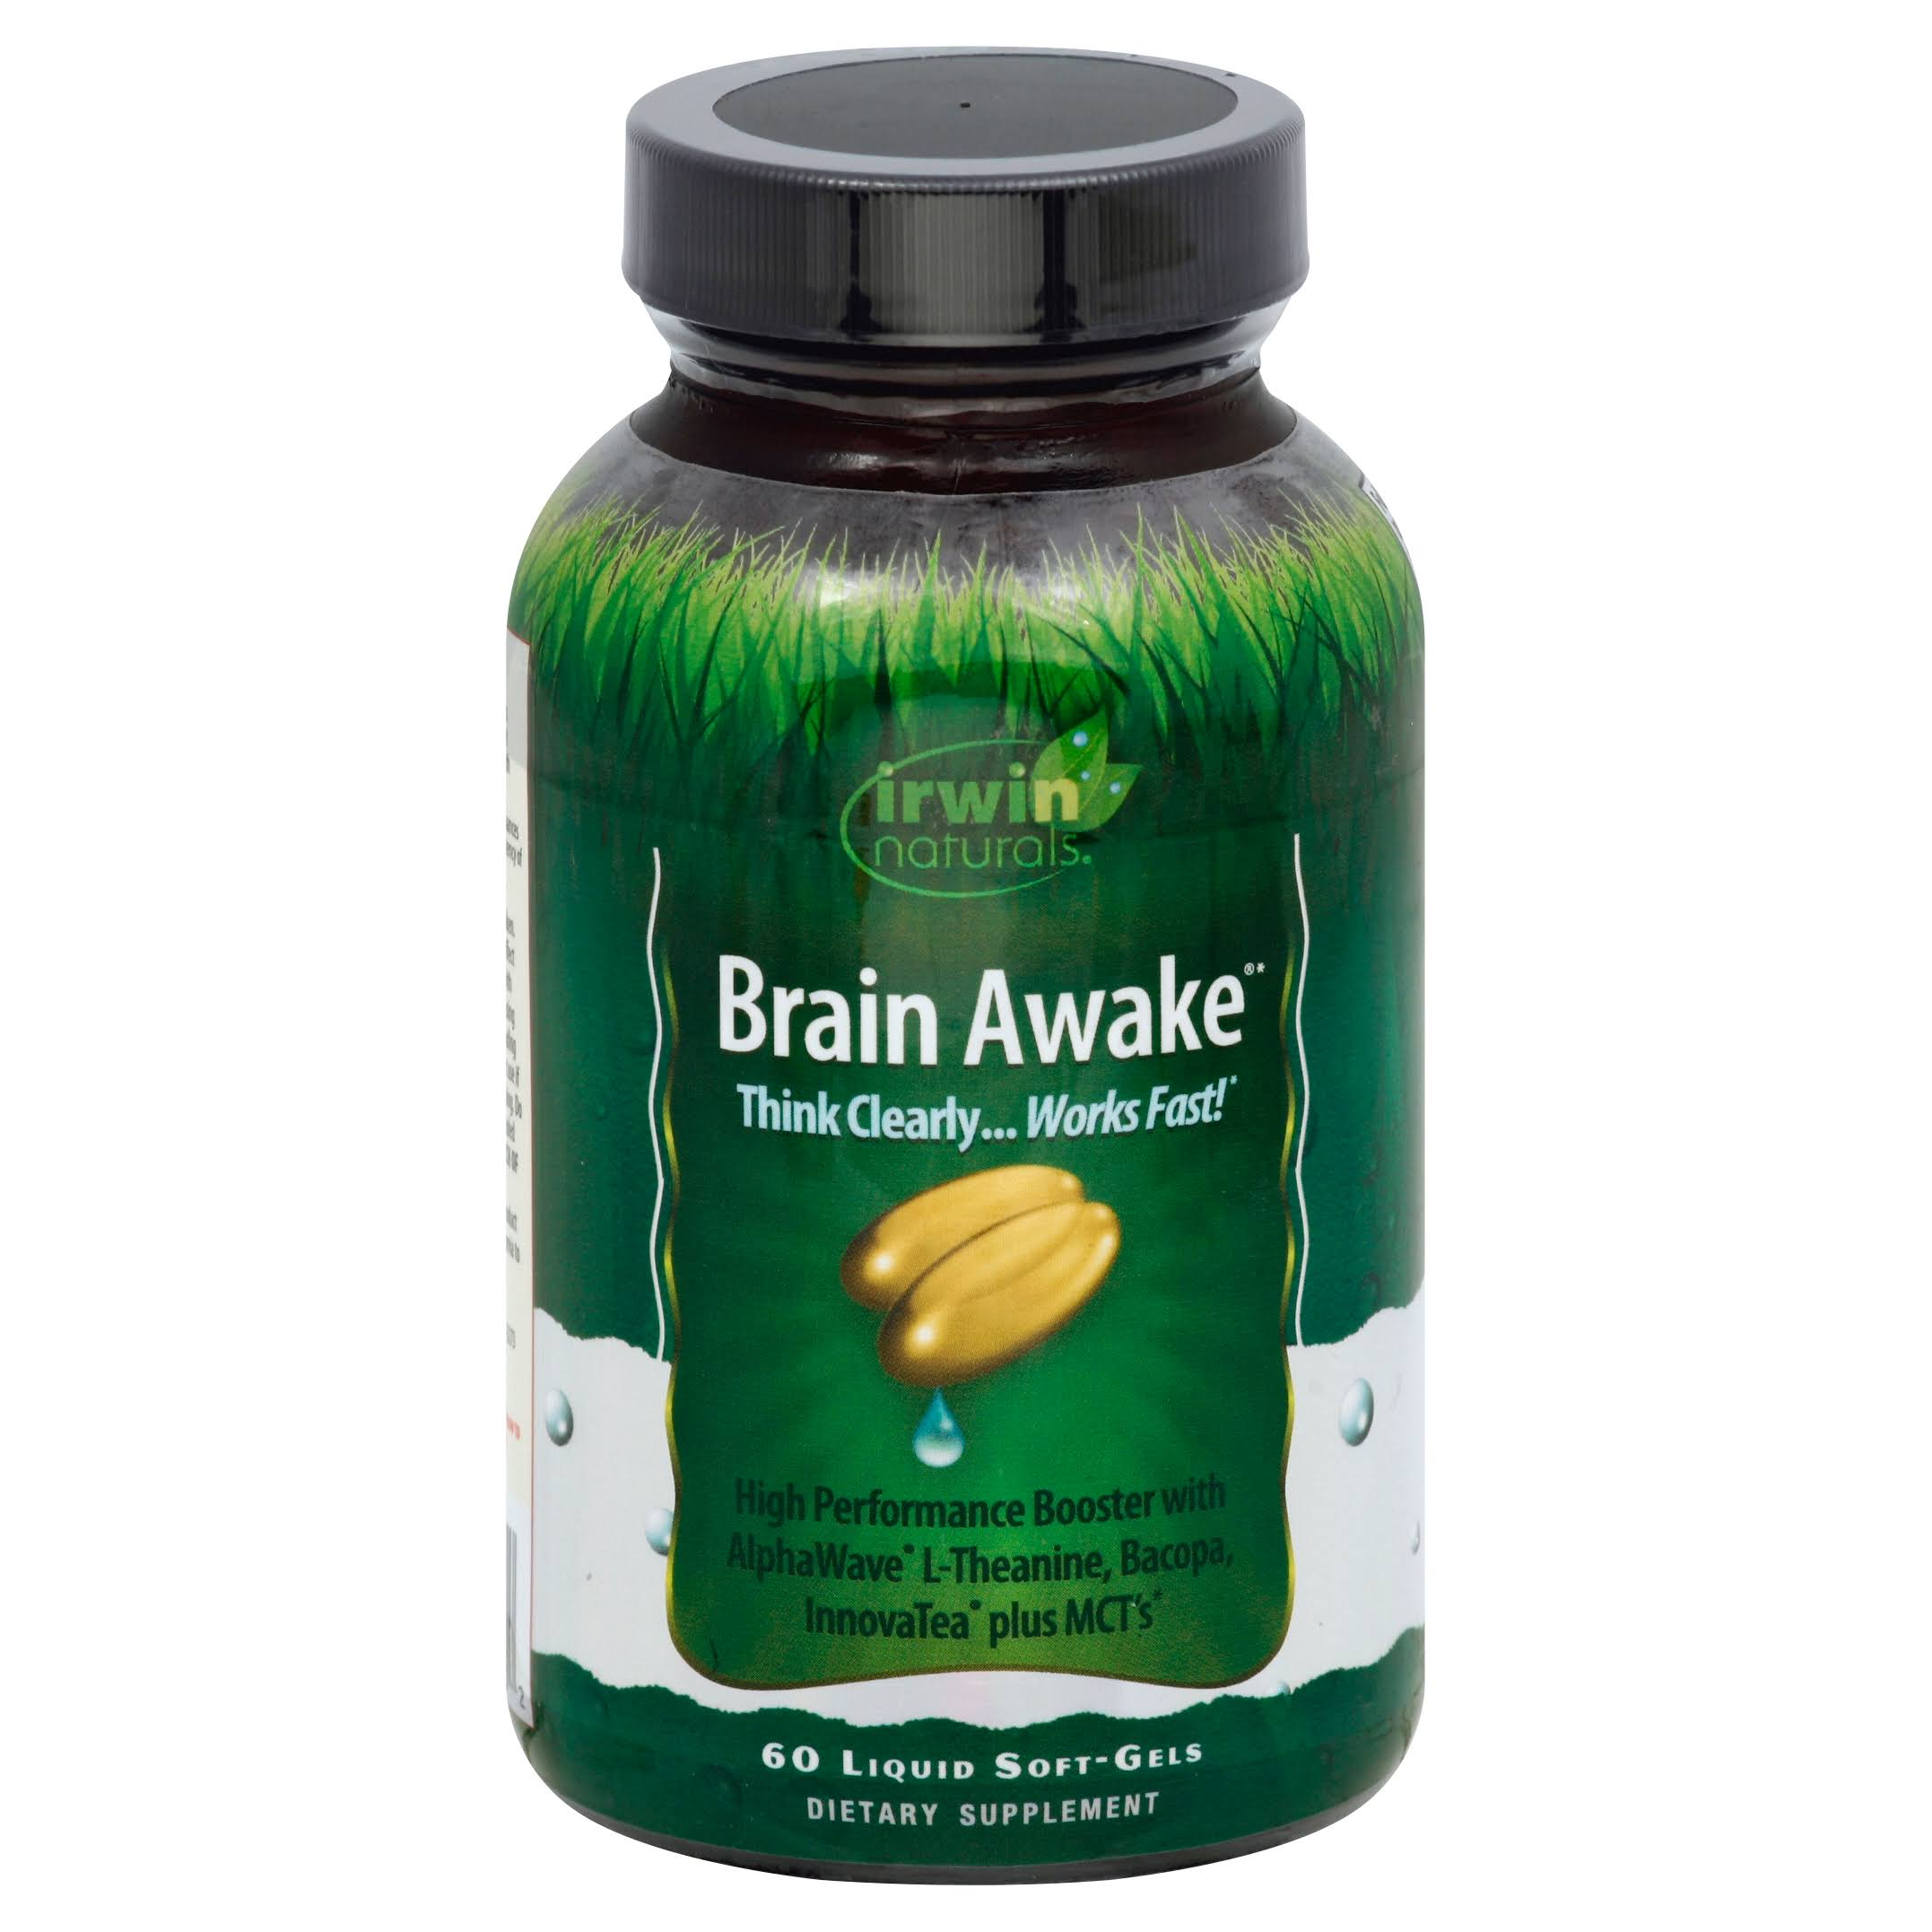 Irwin Naturals Brain Awake Diet Supplement